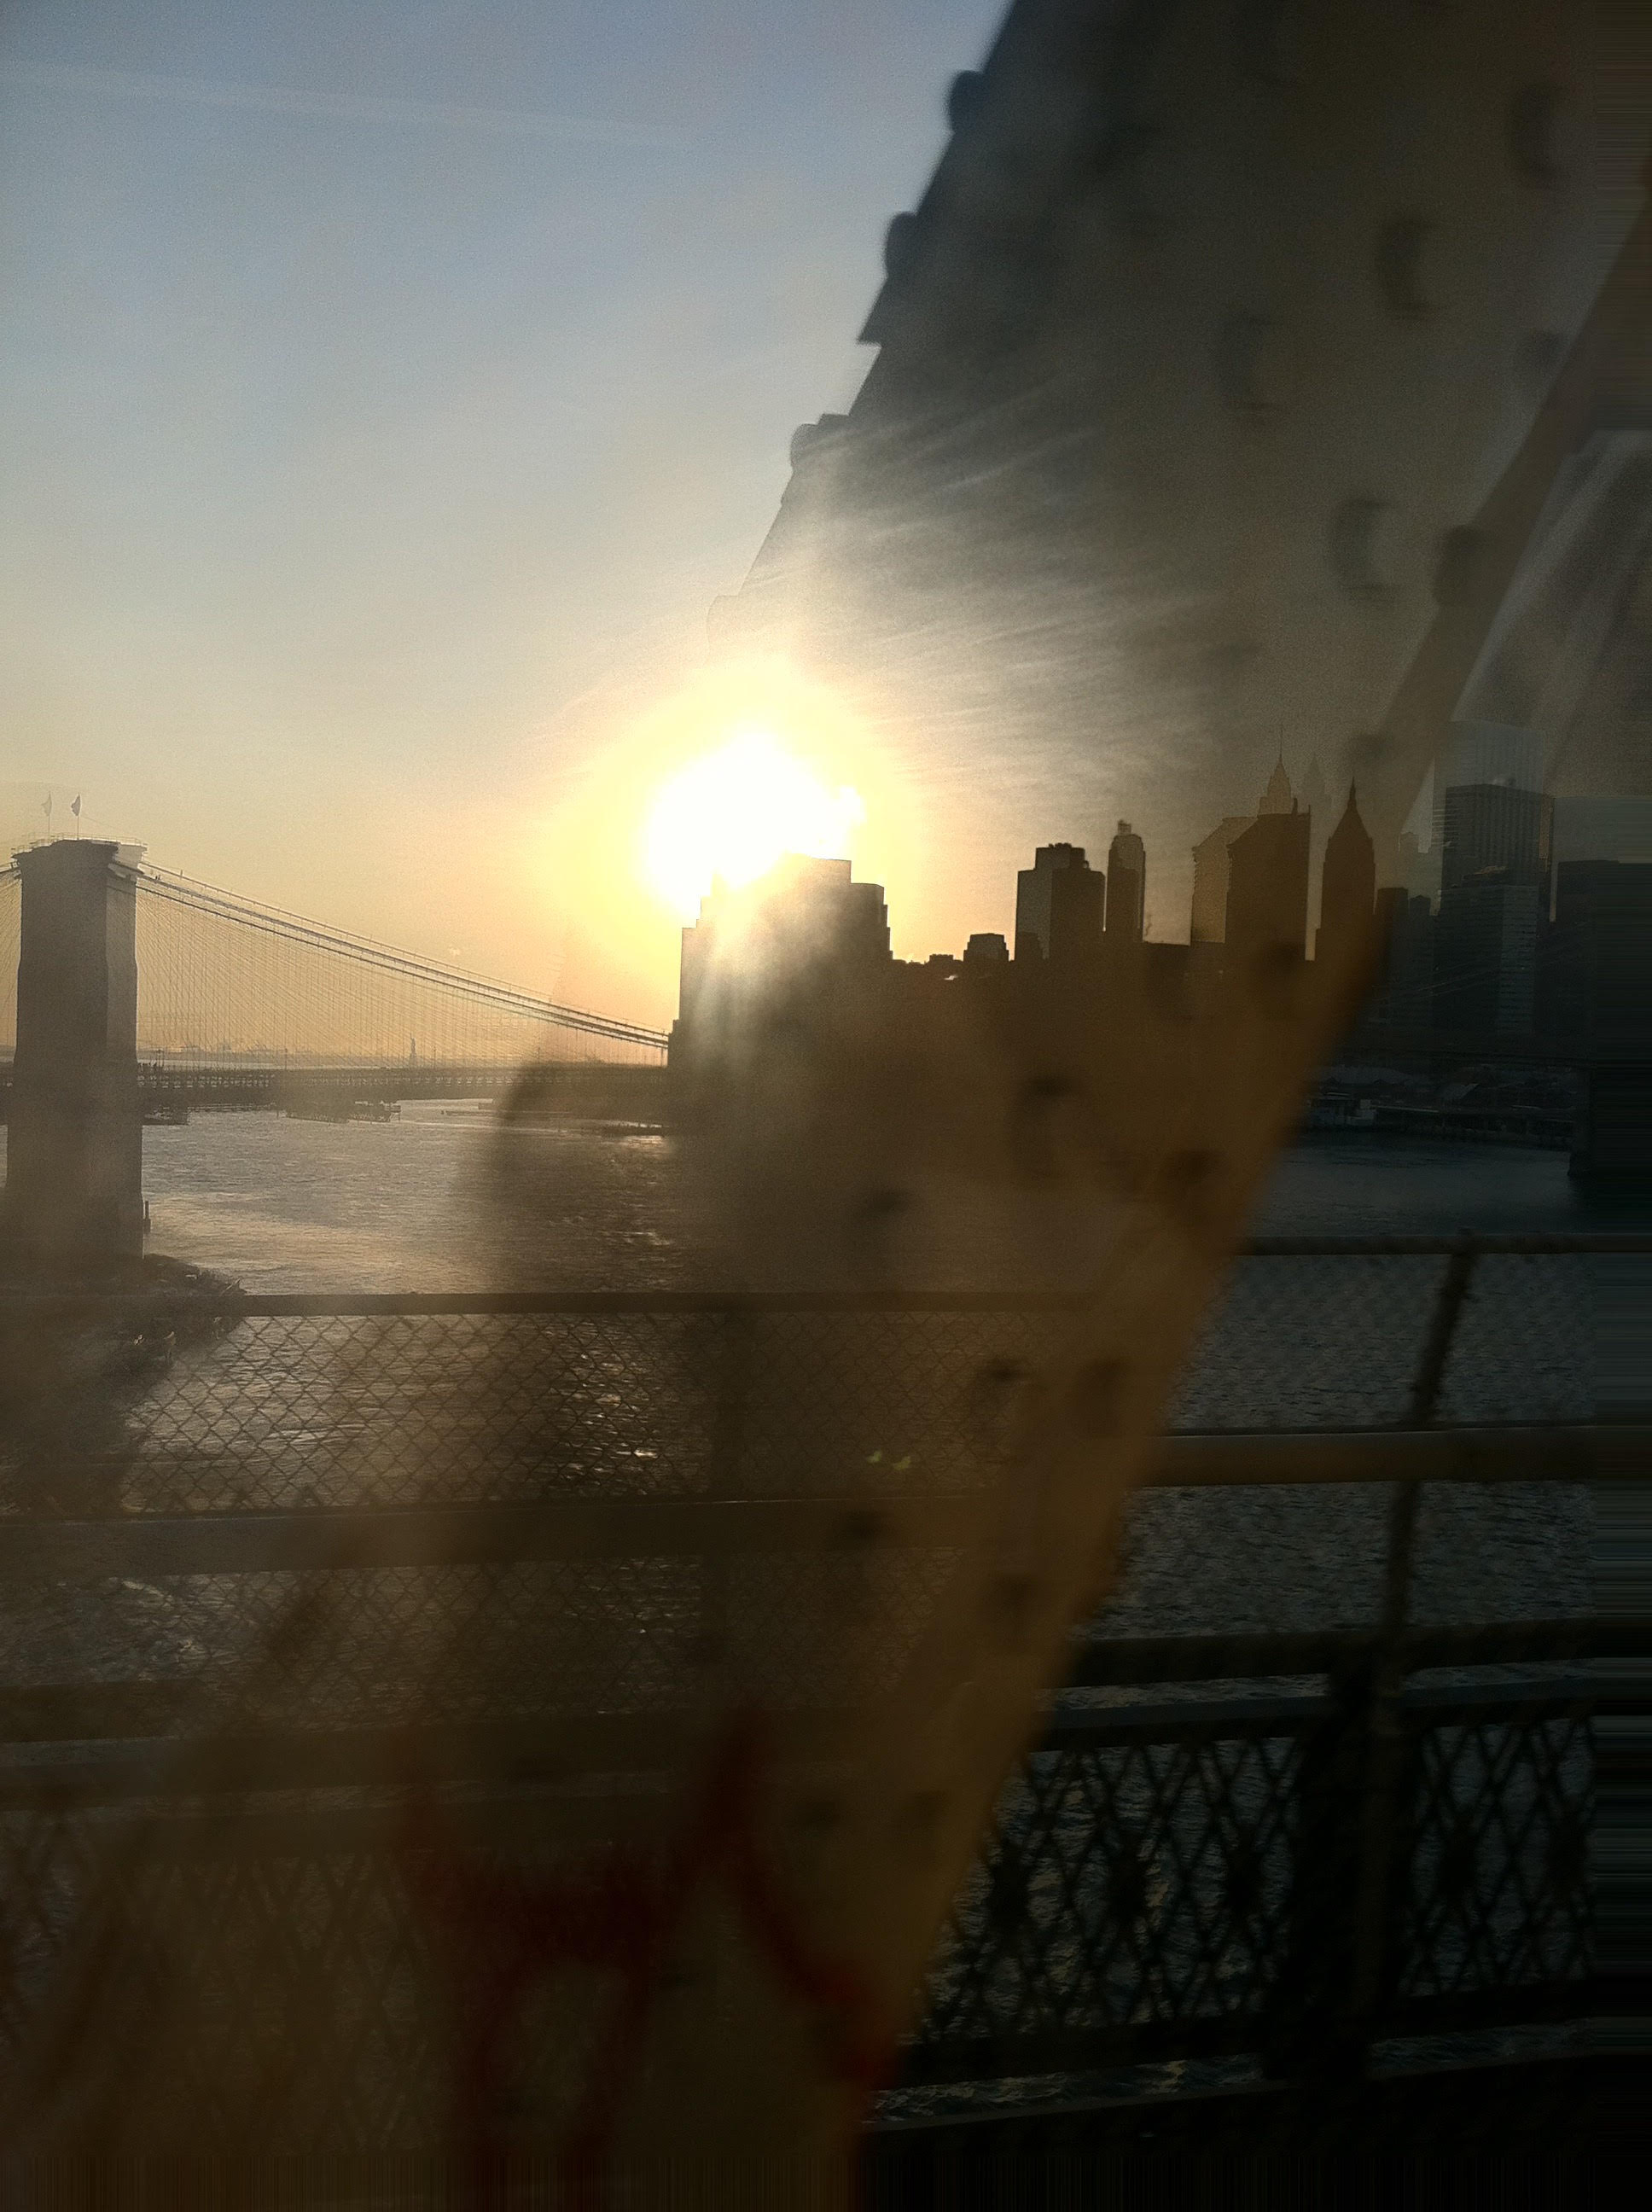 """Most days, I grab the subway for my commute and I'm lucky enough to see some sunshine as we go over the Manhattan bridge.""Sean Crowe, Senior Experience Designer at Moment"